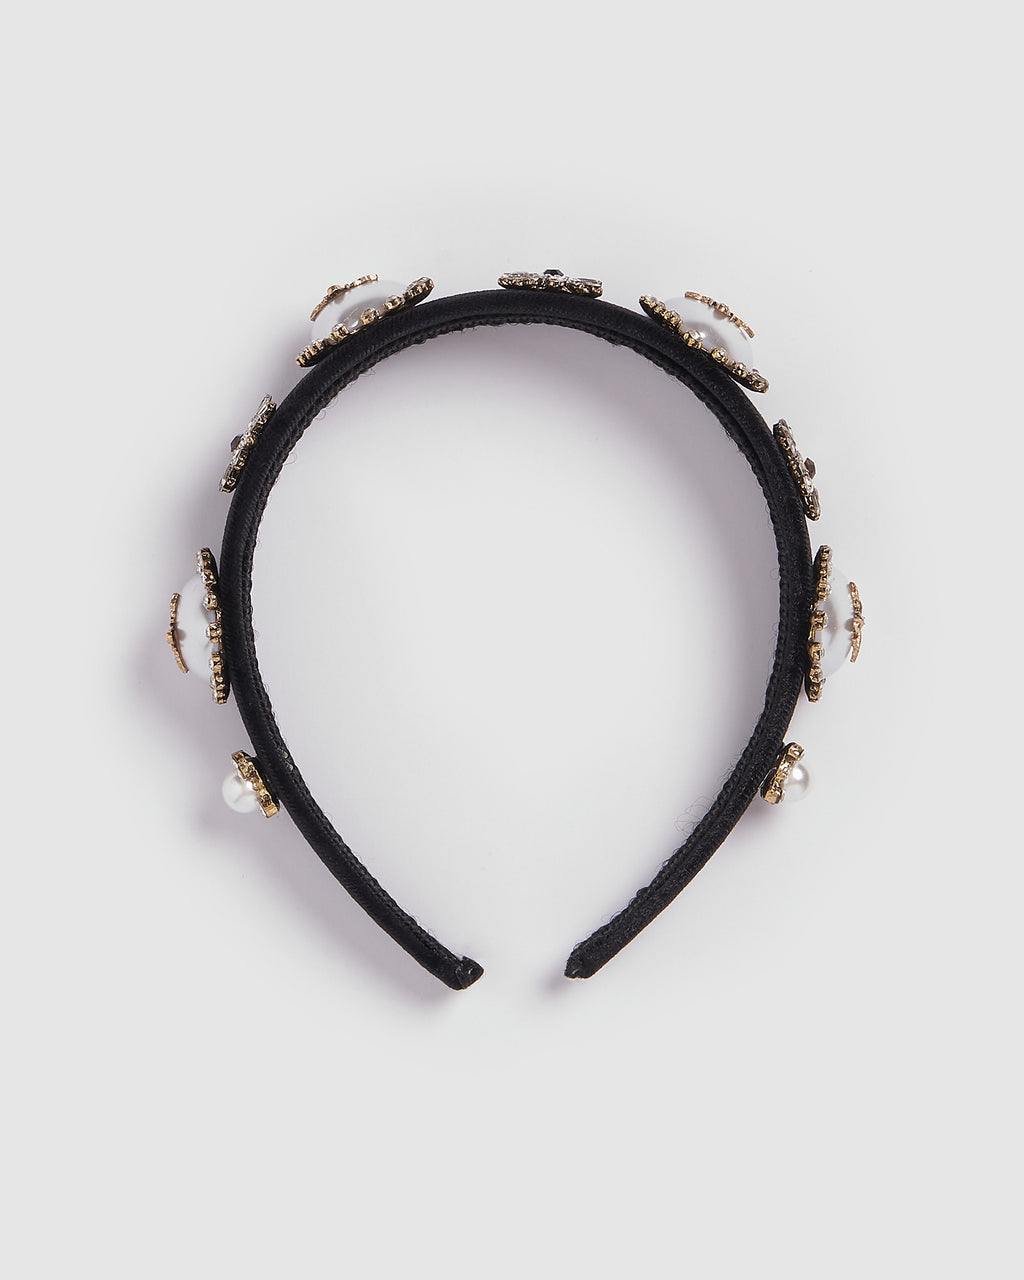 Izoa Beckham Headband Black